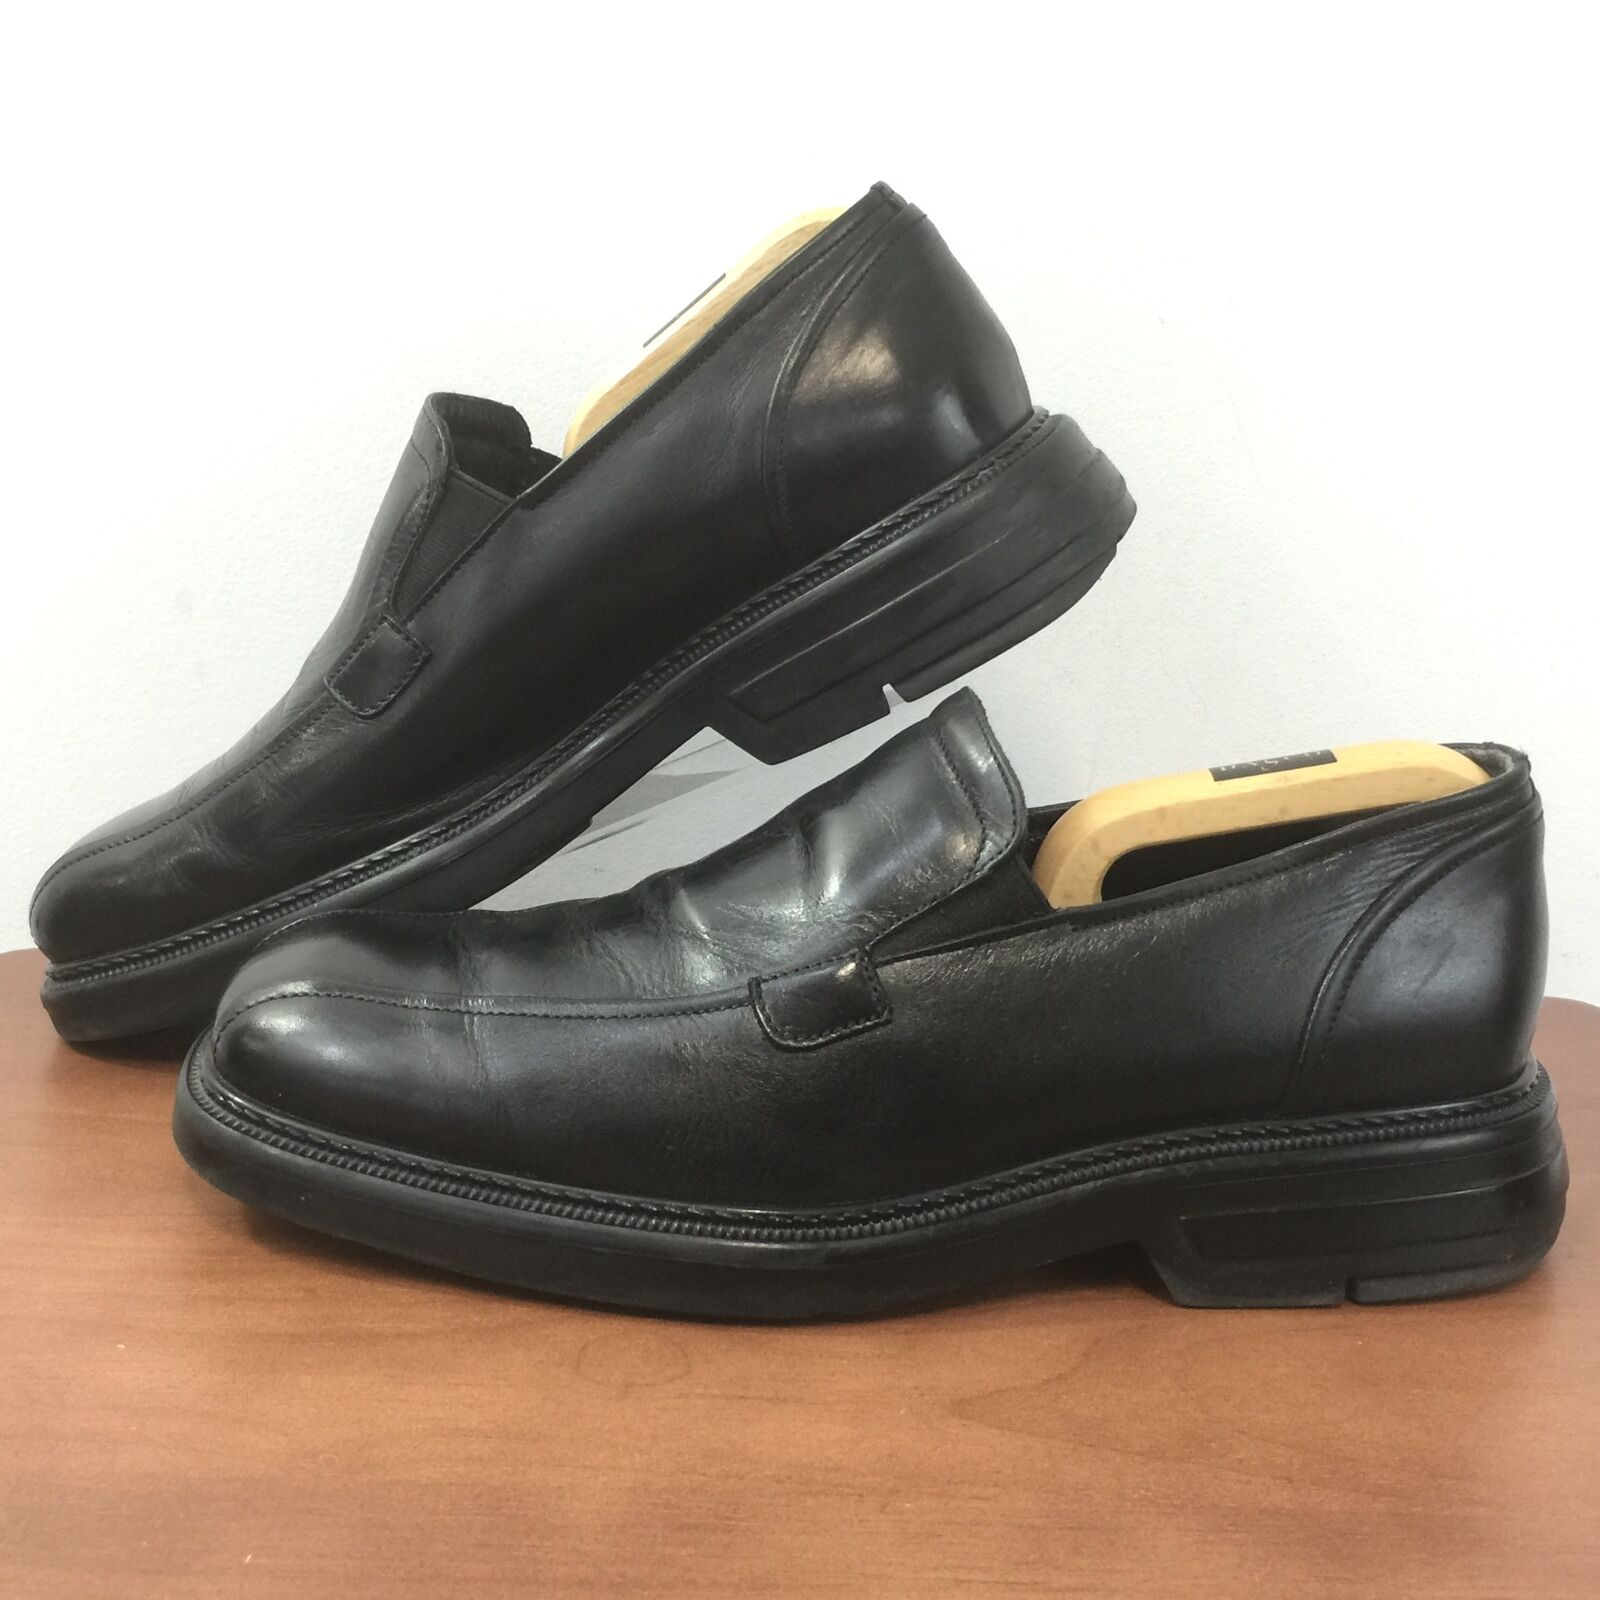 b7653a4c054a7 BASS Mens 9.5M Black Leather Dress shoes Made In ITALY Size 9.5M ...